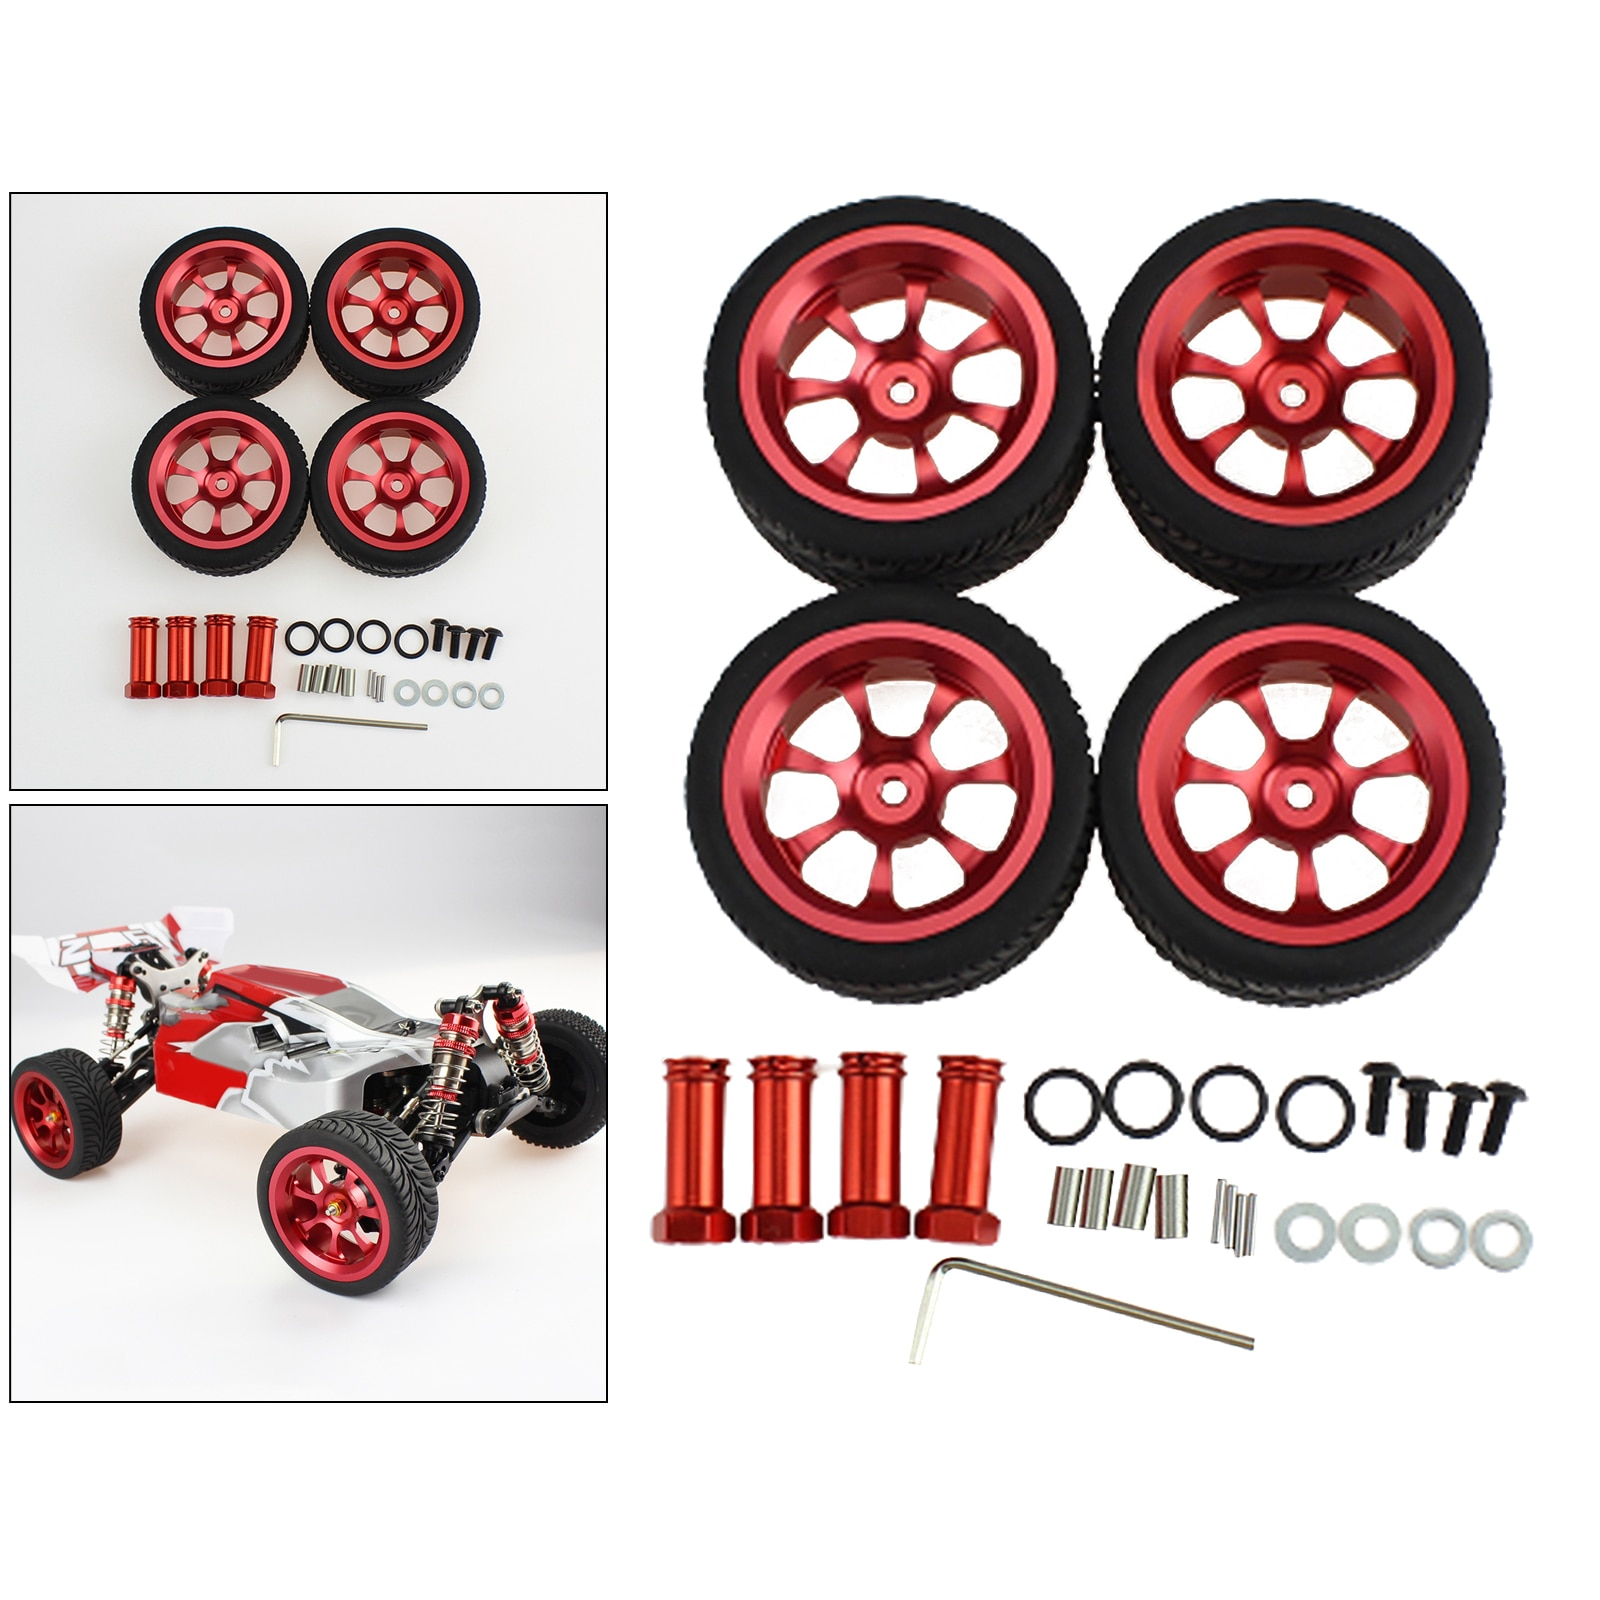 1Set RC Car Wheel Tire RC Car Model Accessories Kids Adults Toys for